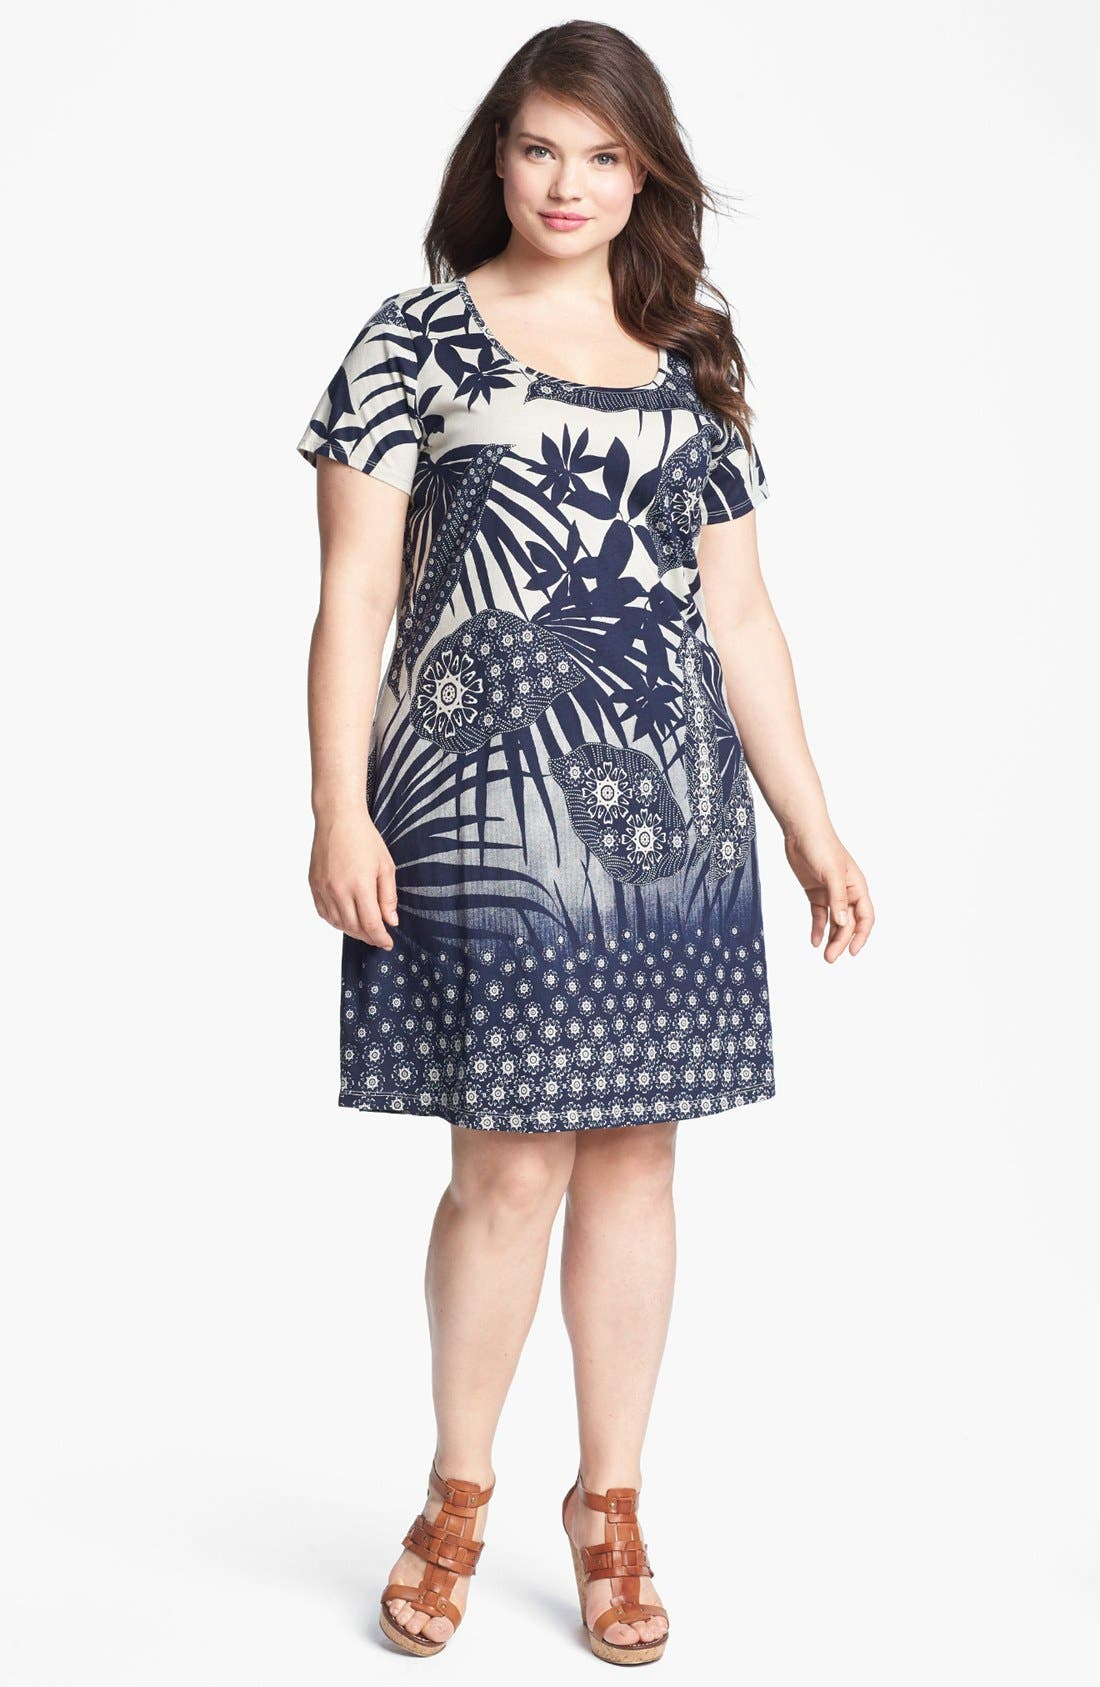 Alternate Image 1 Selected - Lucky Brand 'Chantal' Print Cotton Dress (Plus Size)